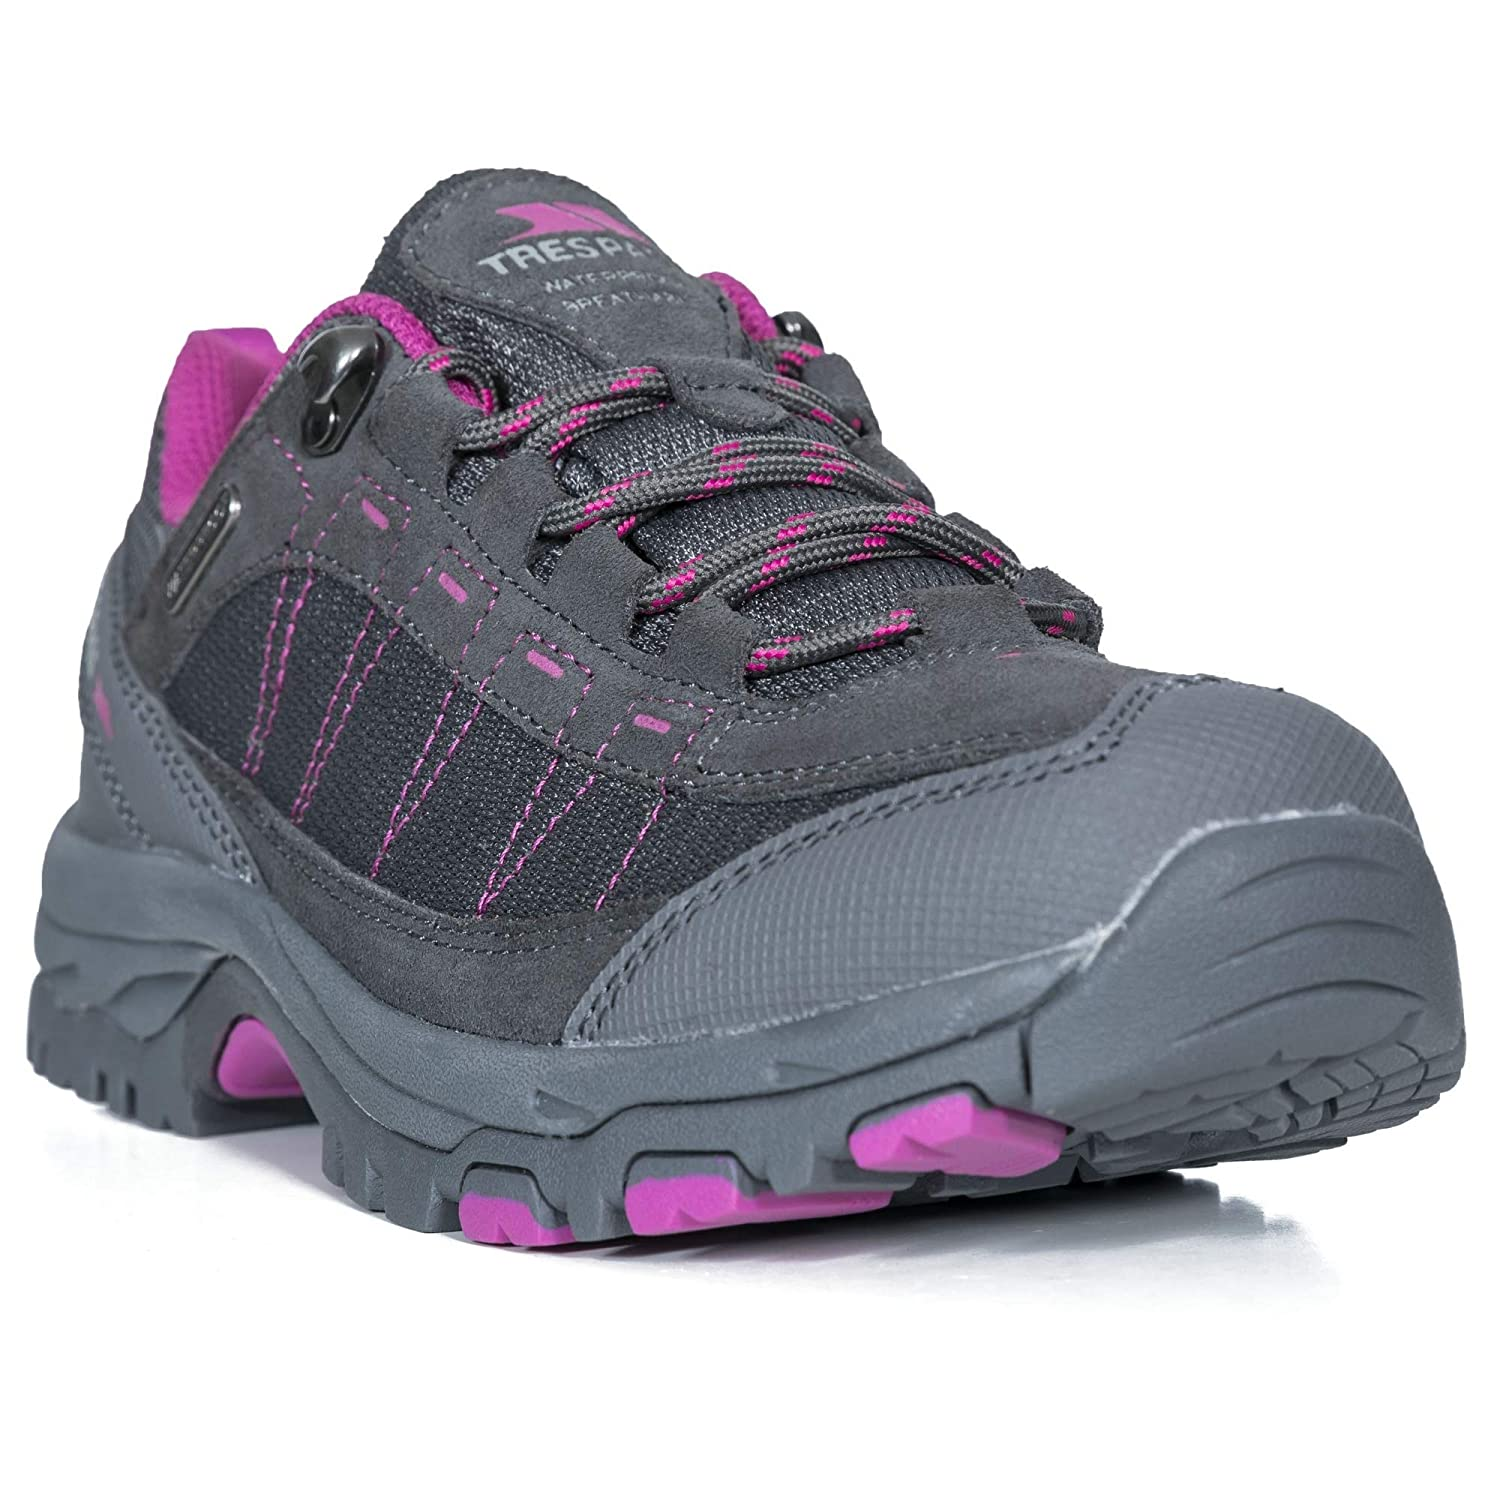 Scree Multisport Out Chaussures Out Trespass Scree Scree Multisport Chaussures Trespass Trespass Chaussures L34jq5RA